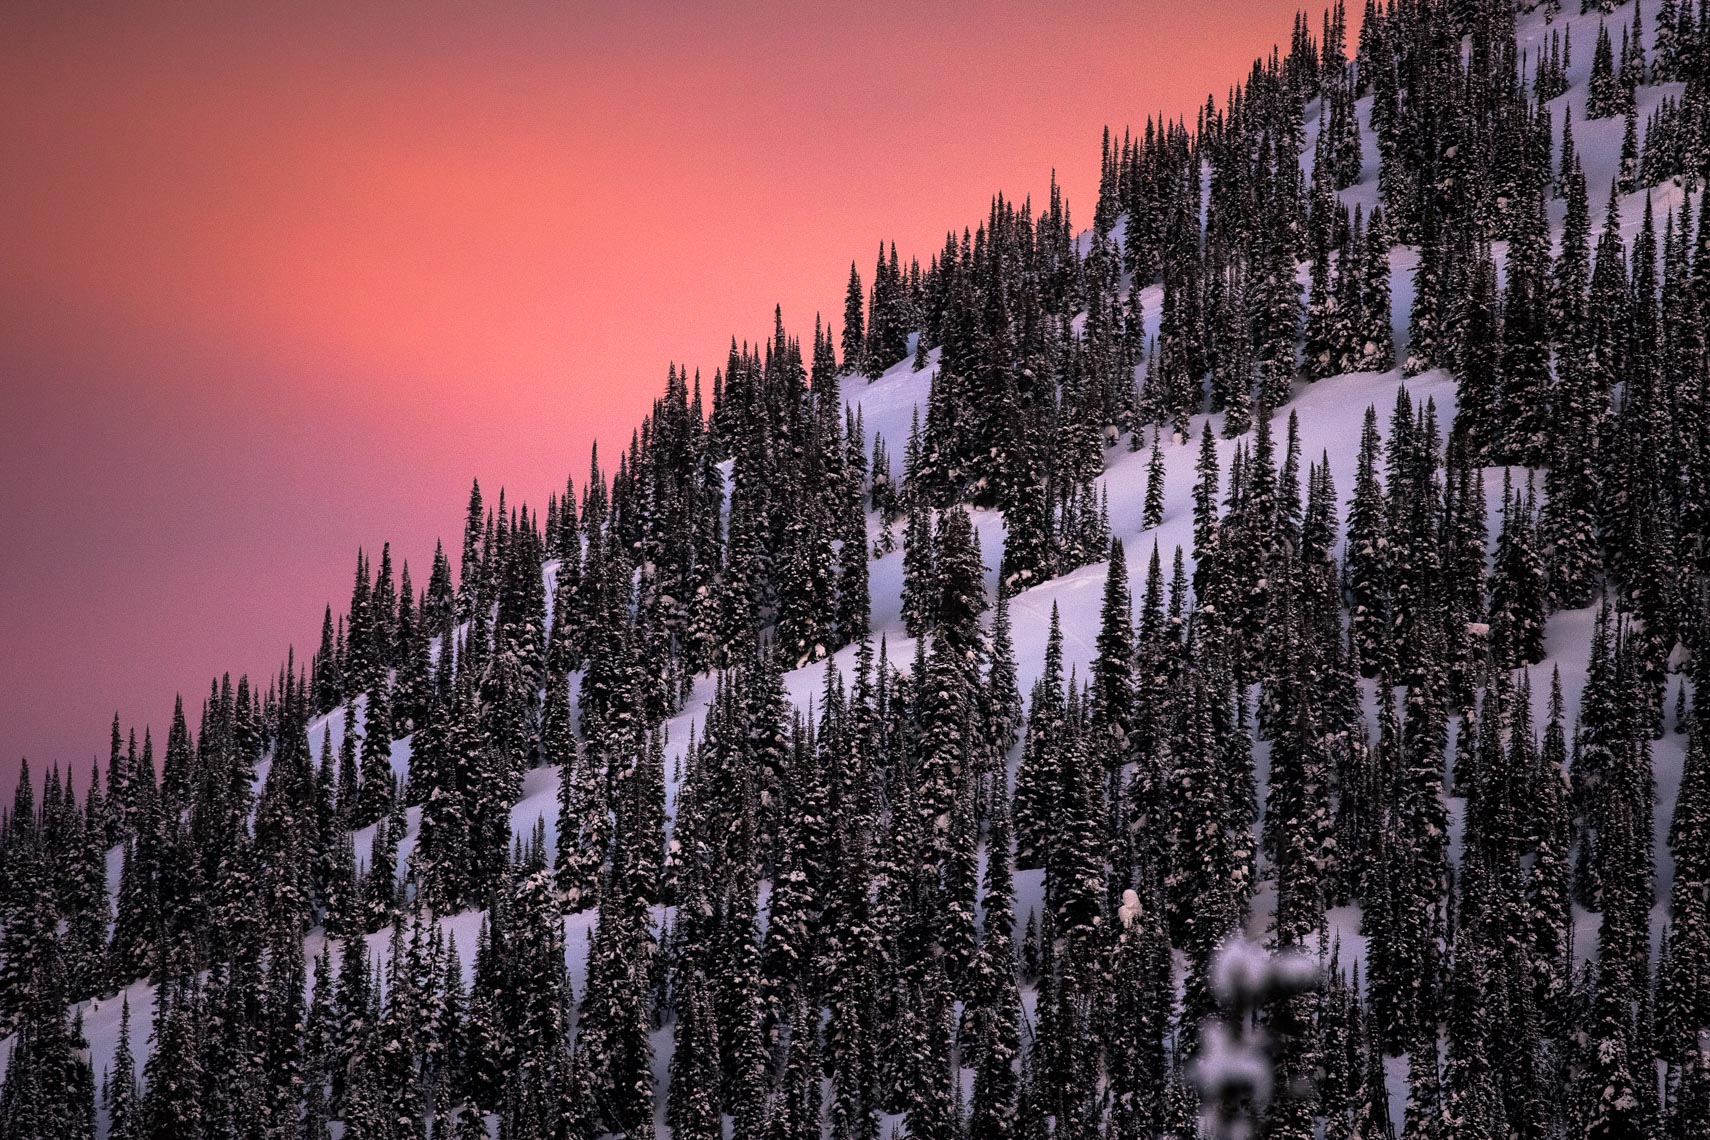 Mountain trees at sunset in British Columbia, Canada by commercial and travel photographer